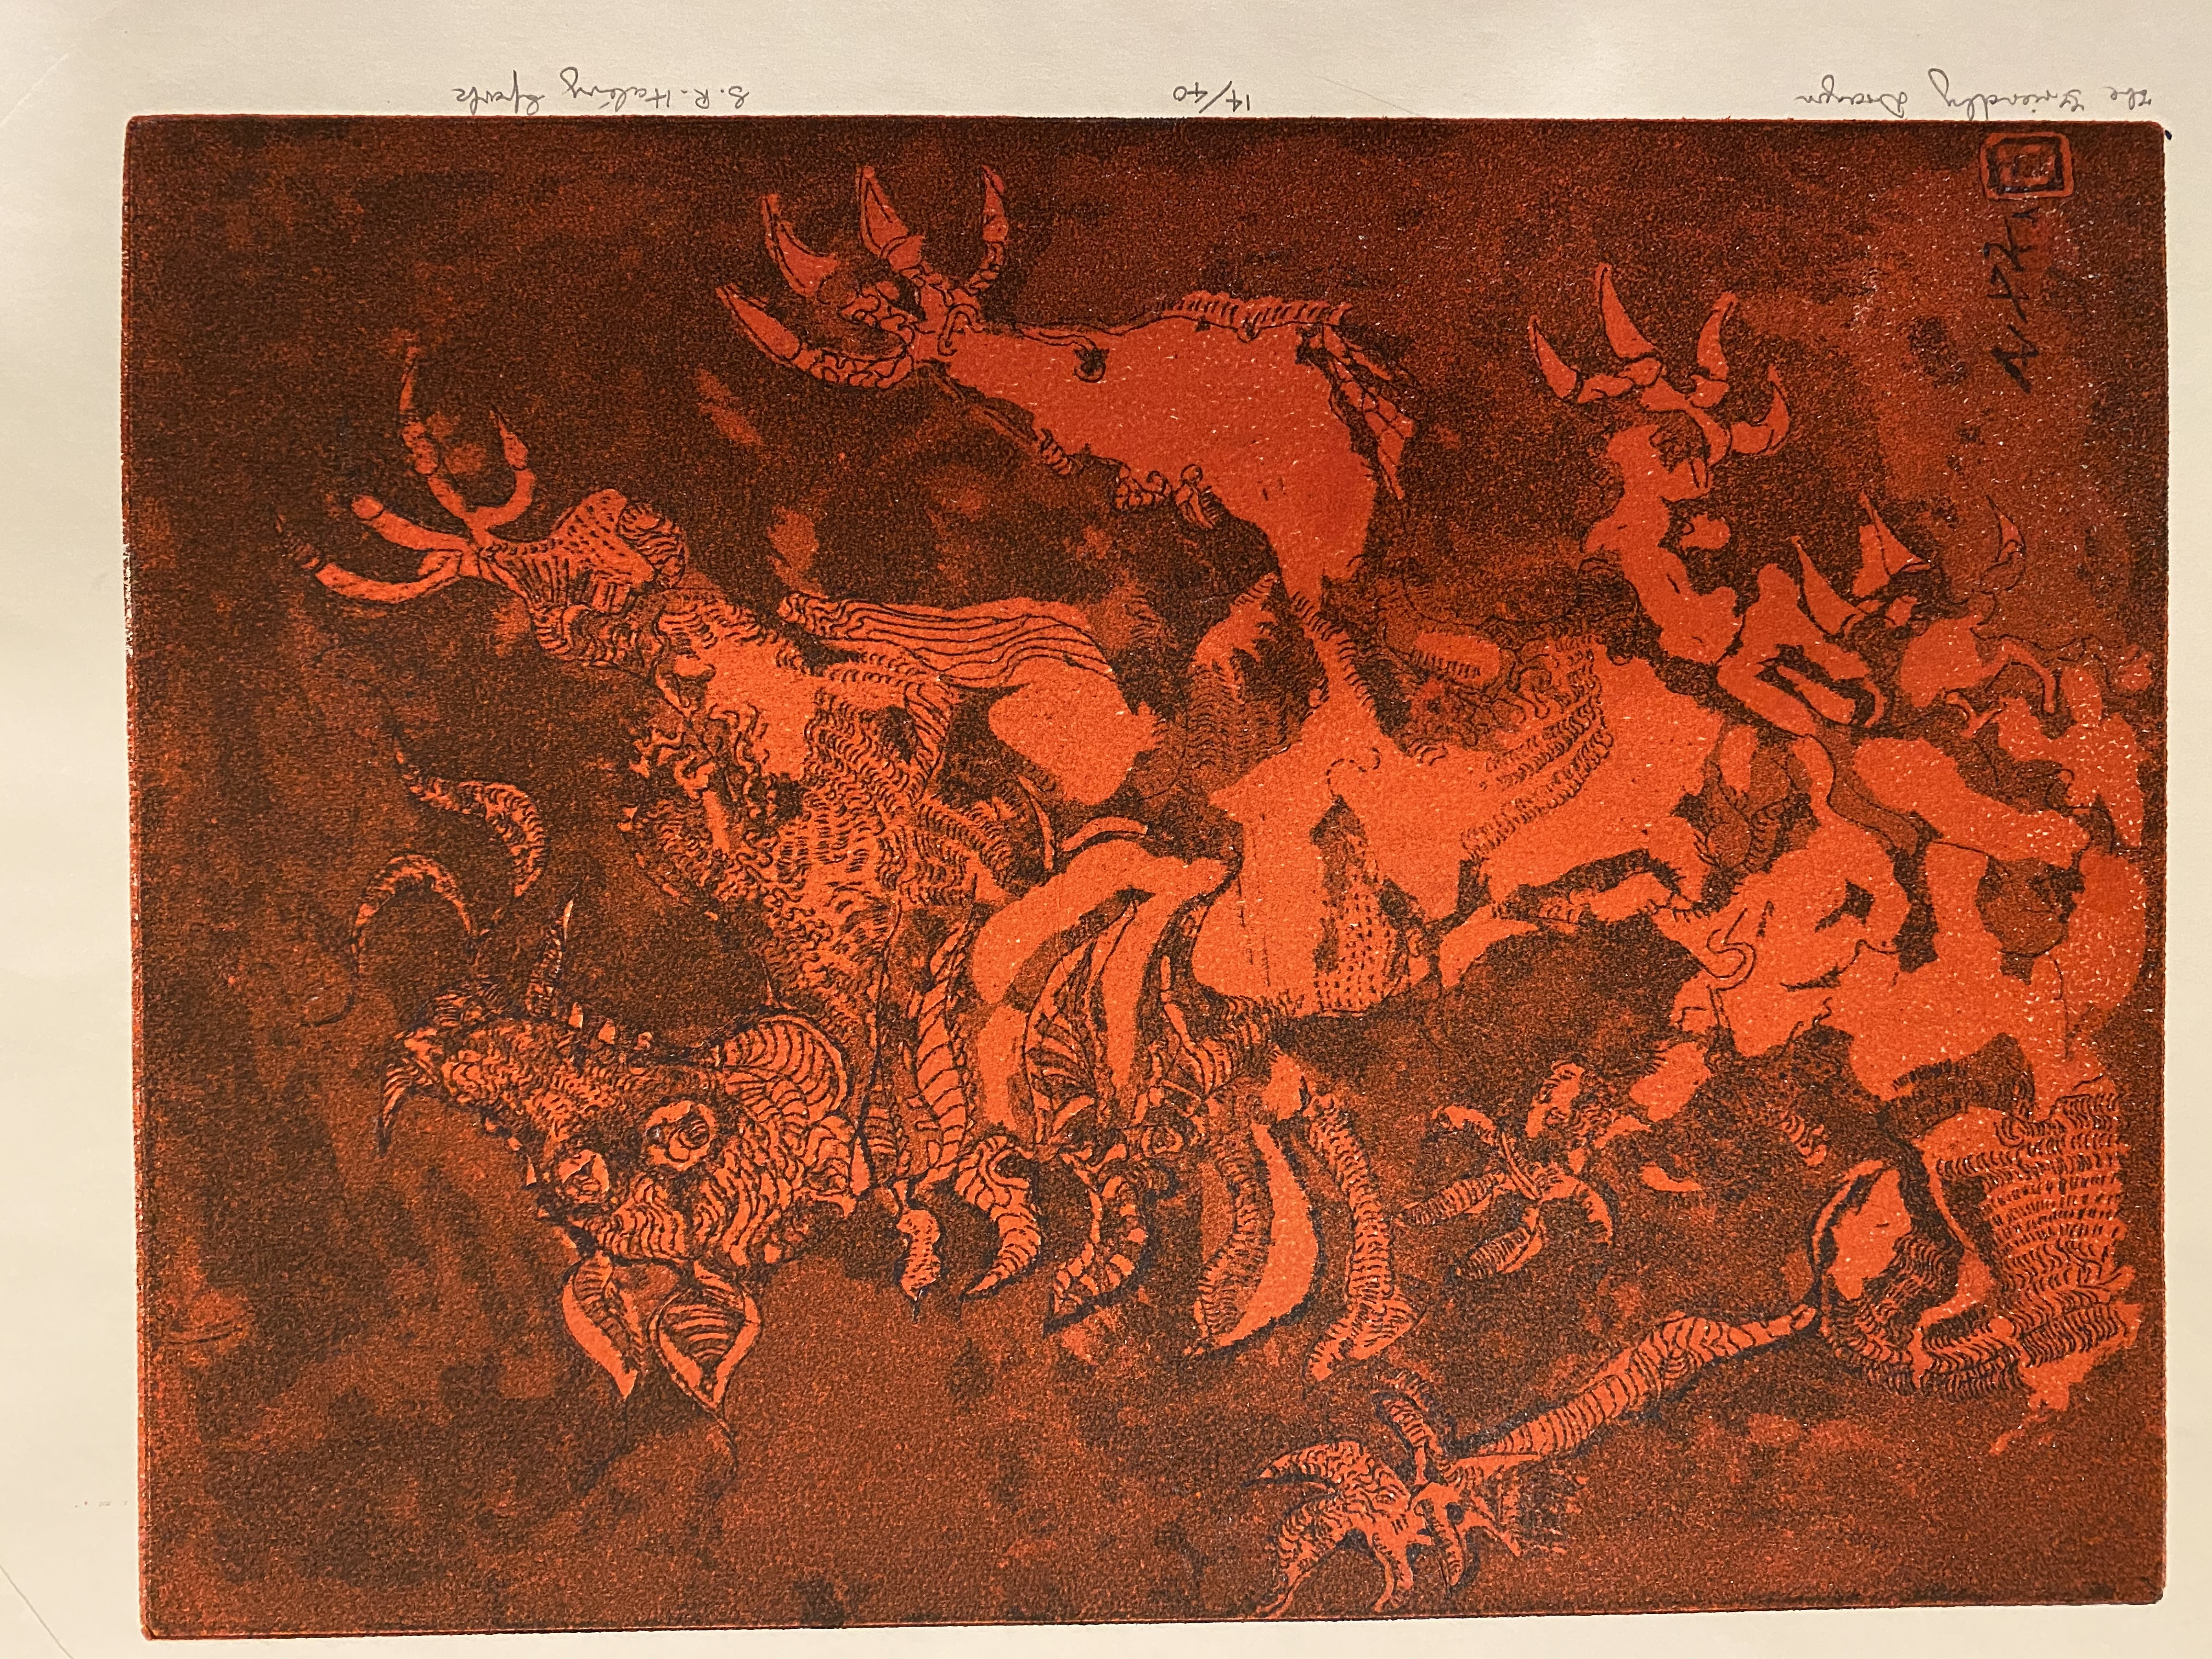 Samuel Robin Spark, The Friendly Dragon Limited Edition Print 91/92 - Image 5 of 5